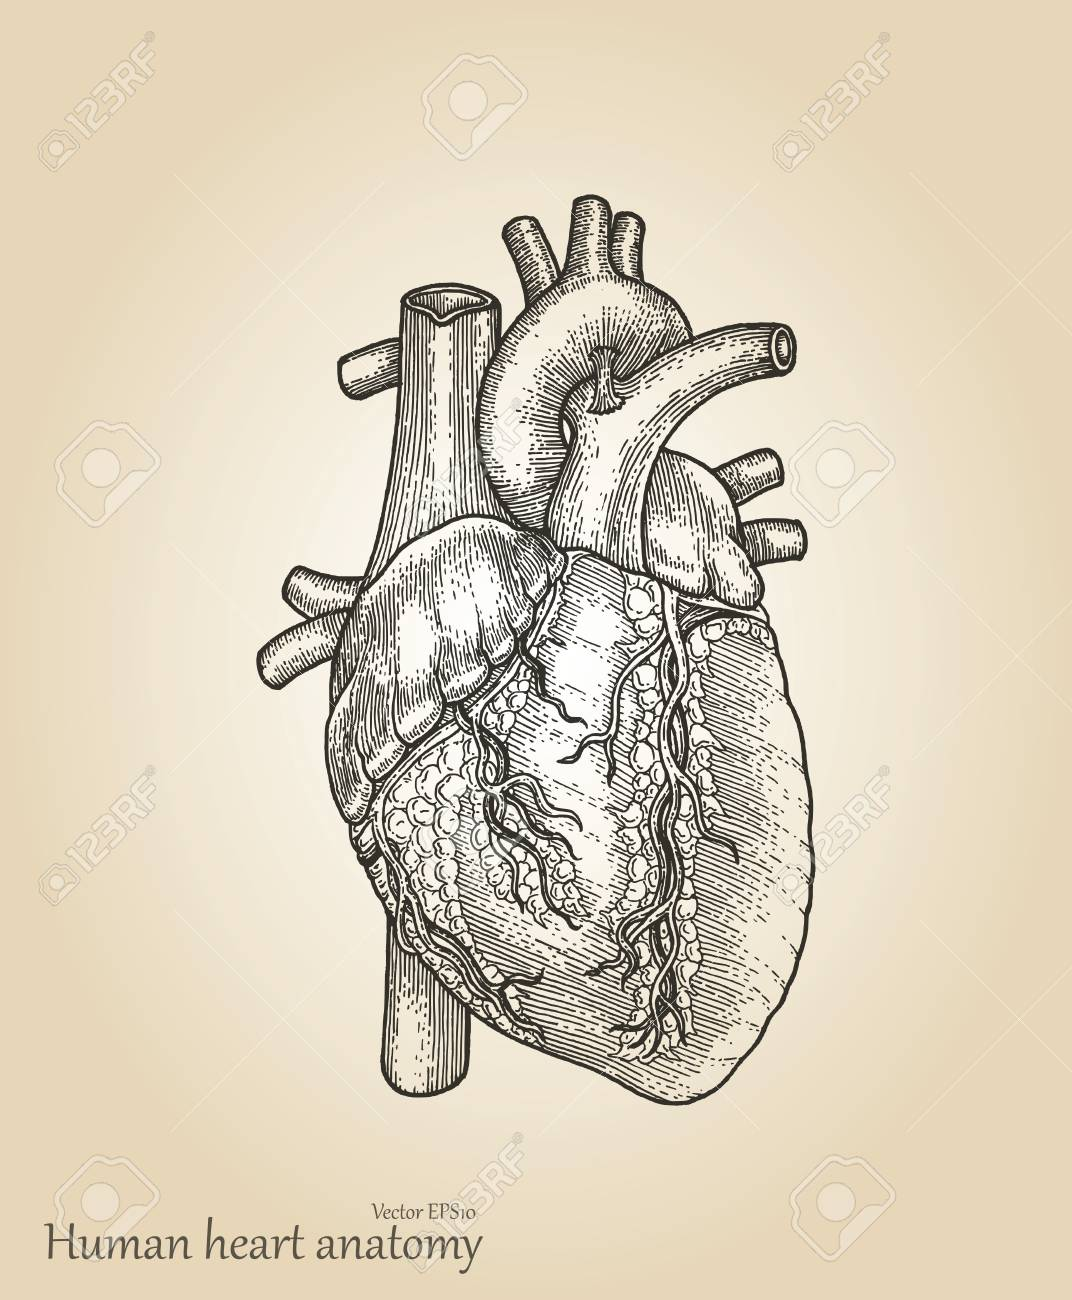 Human Heart Amatomyheart Hand Drawing Vintage Style Royalty Free